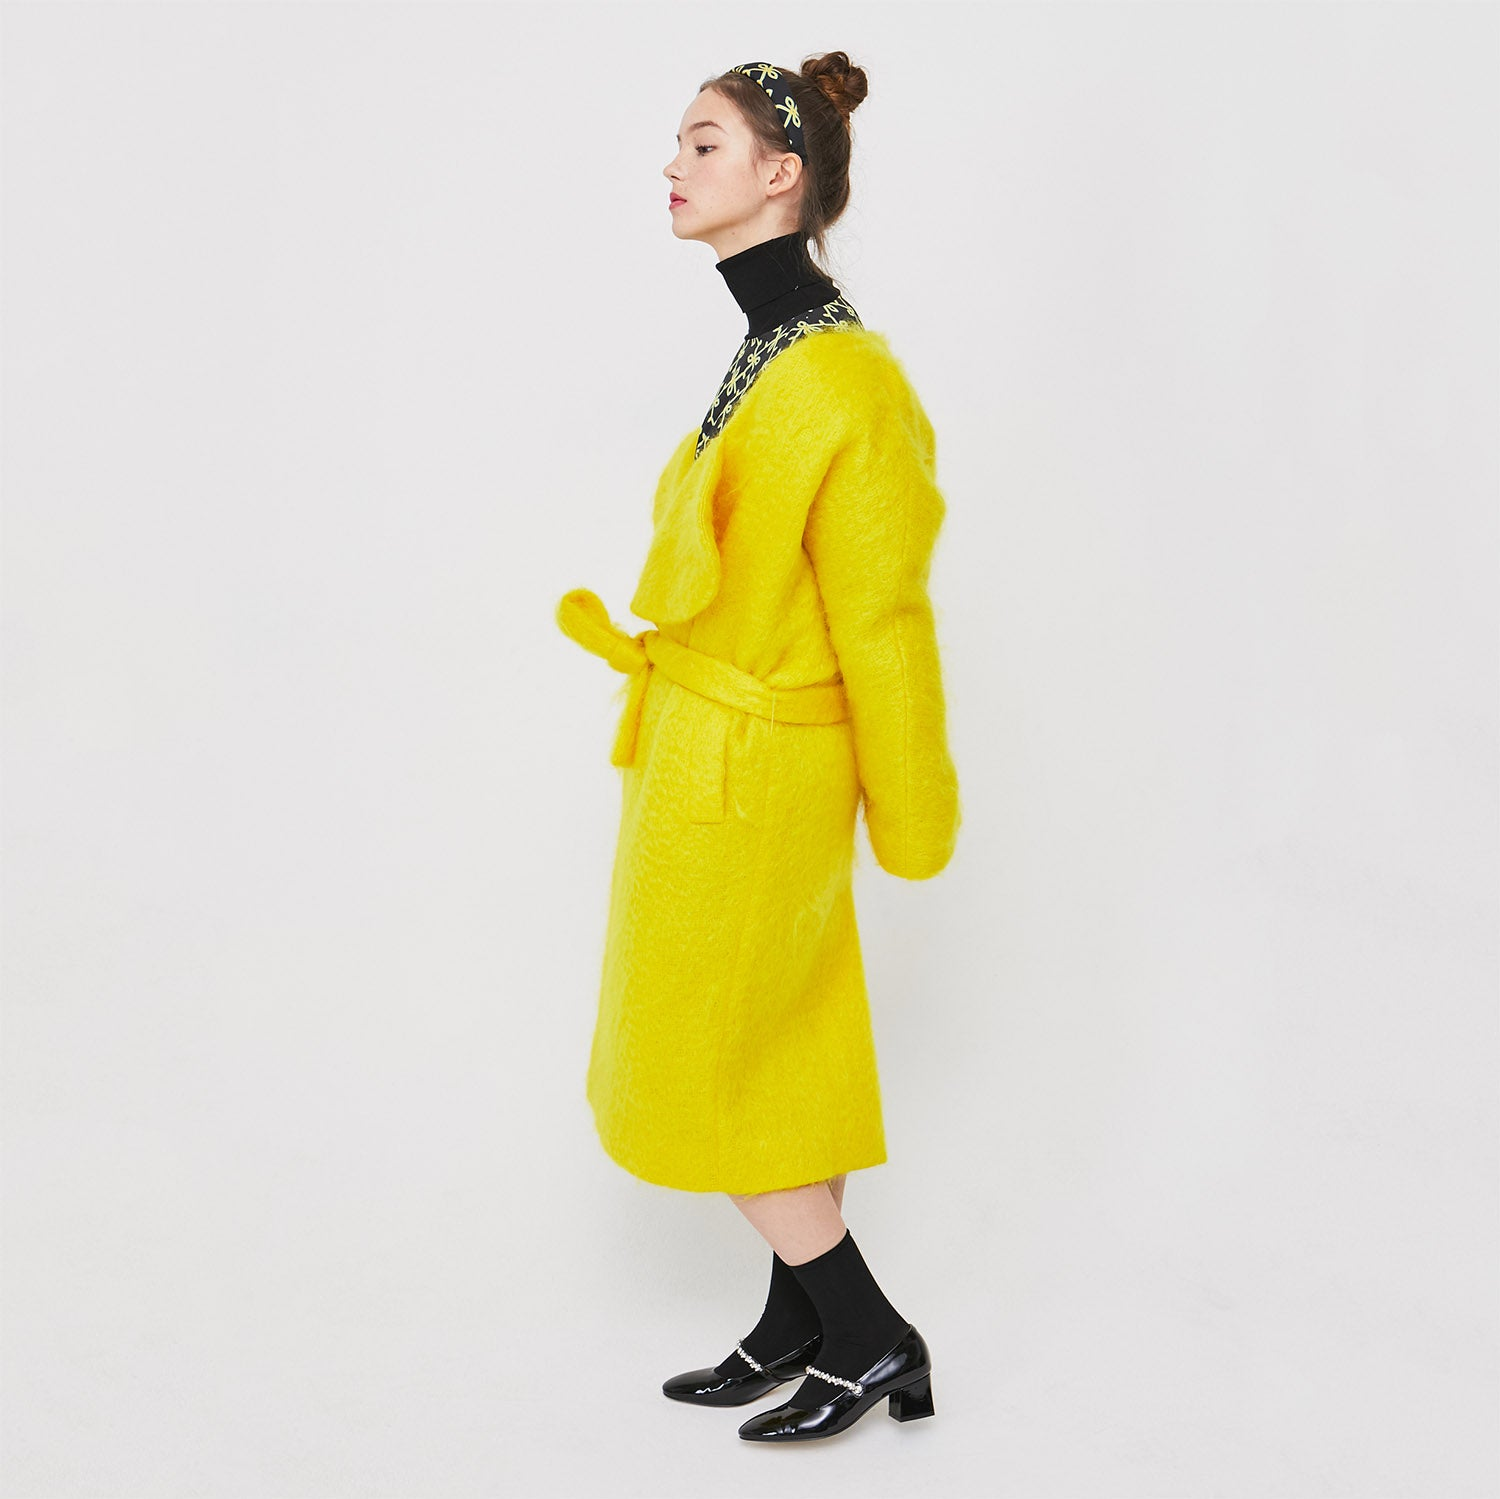 Lovuee Heart Collared Mohair Coat [Yellow]